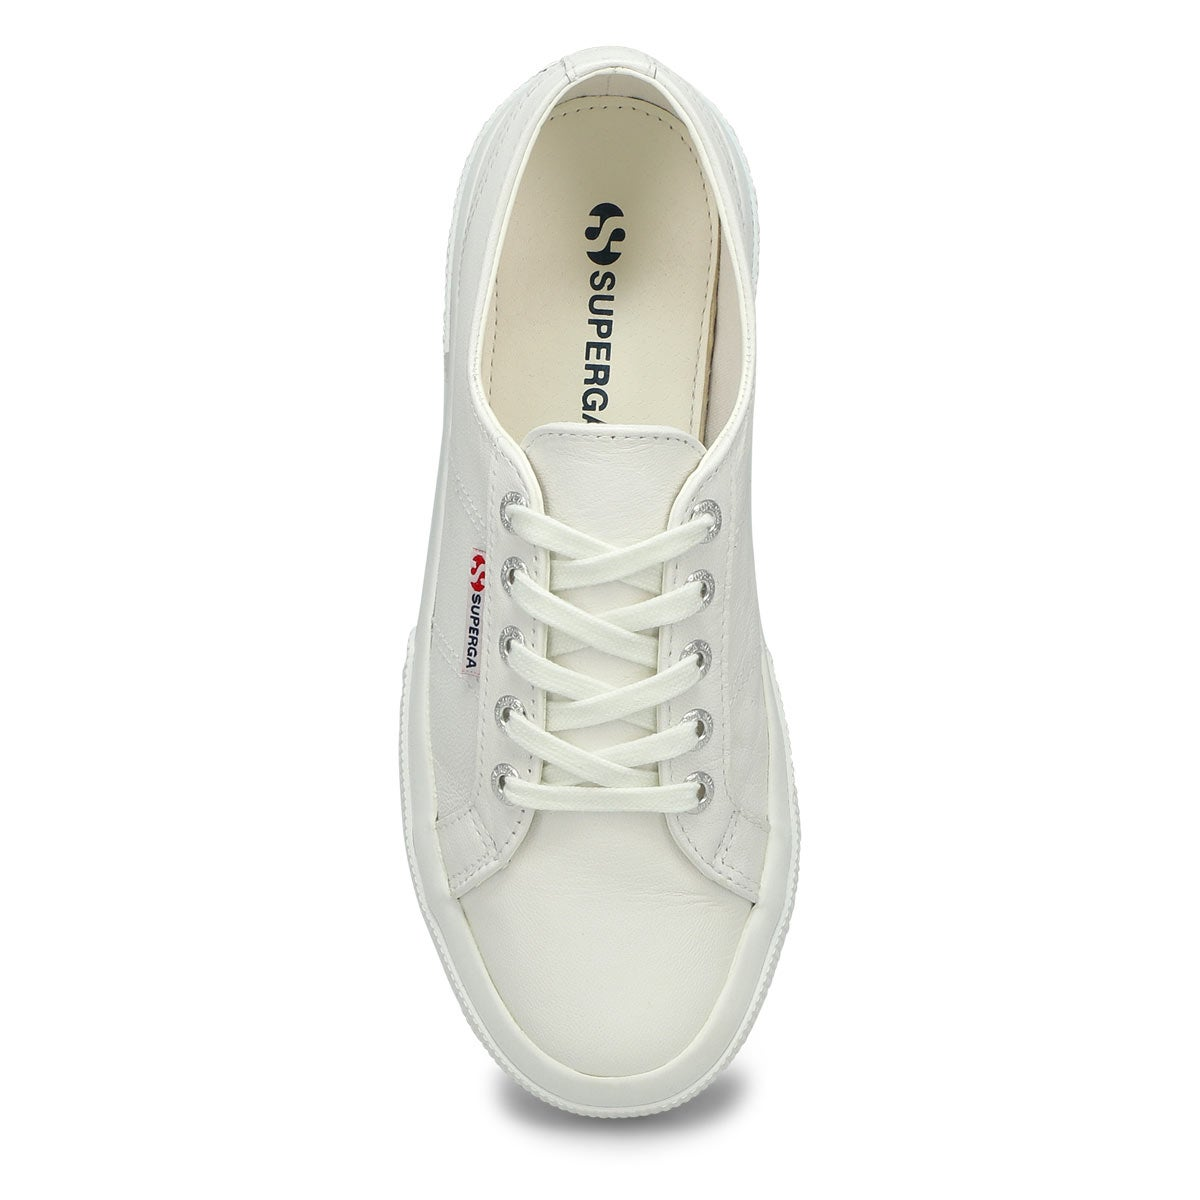 Lds Cotu Classic white leather sneaker